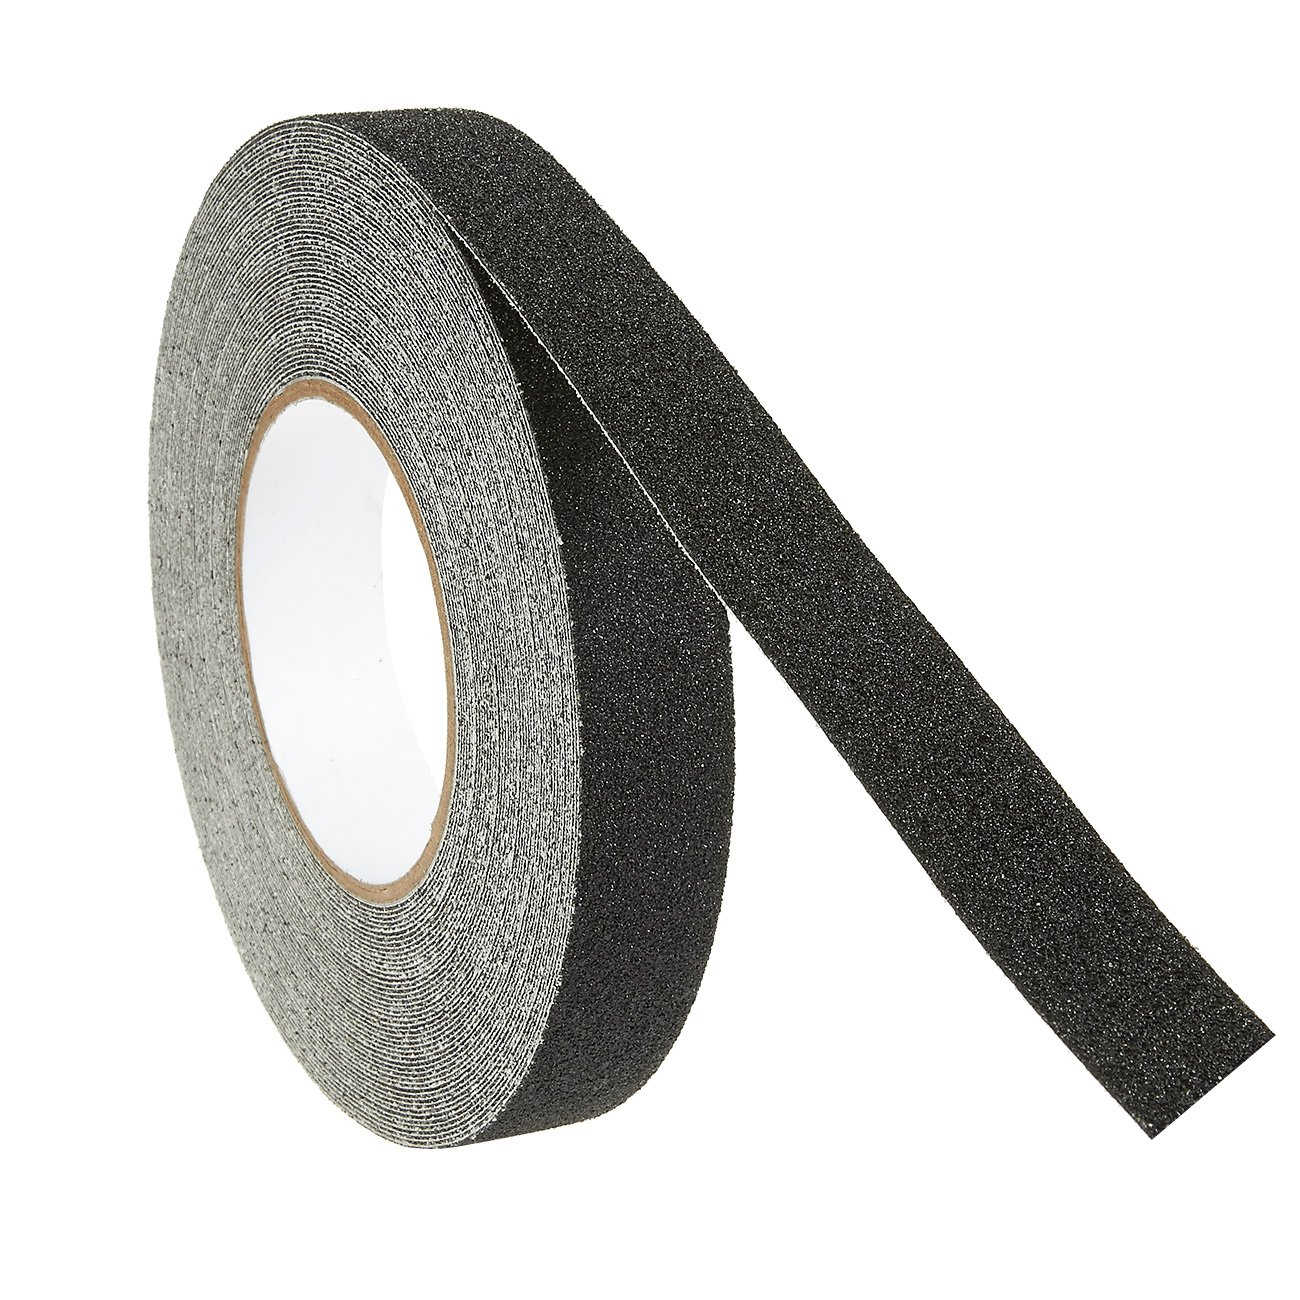 1 Piece Anti-Slip Safety Grip Grit Tape - Black Adhesive Non-Skid Traction Tape for Construction, Safety - 1 inch x 60 feet